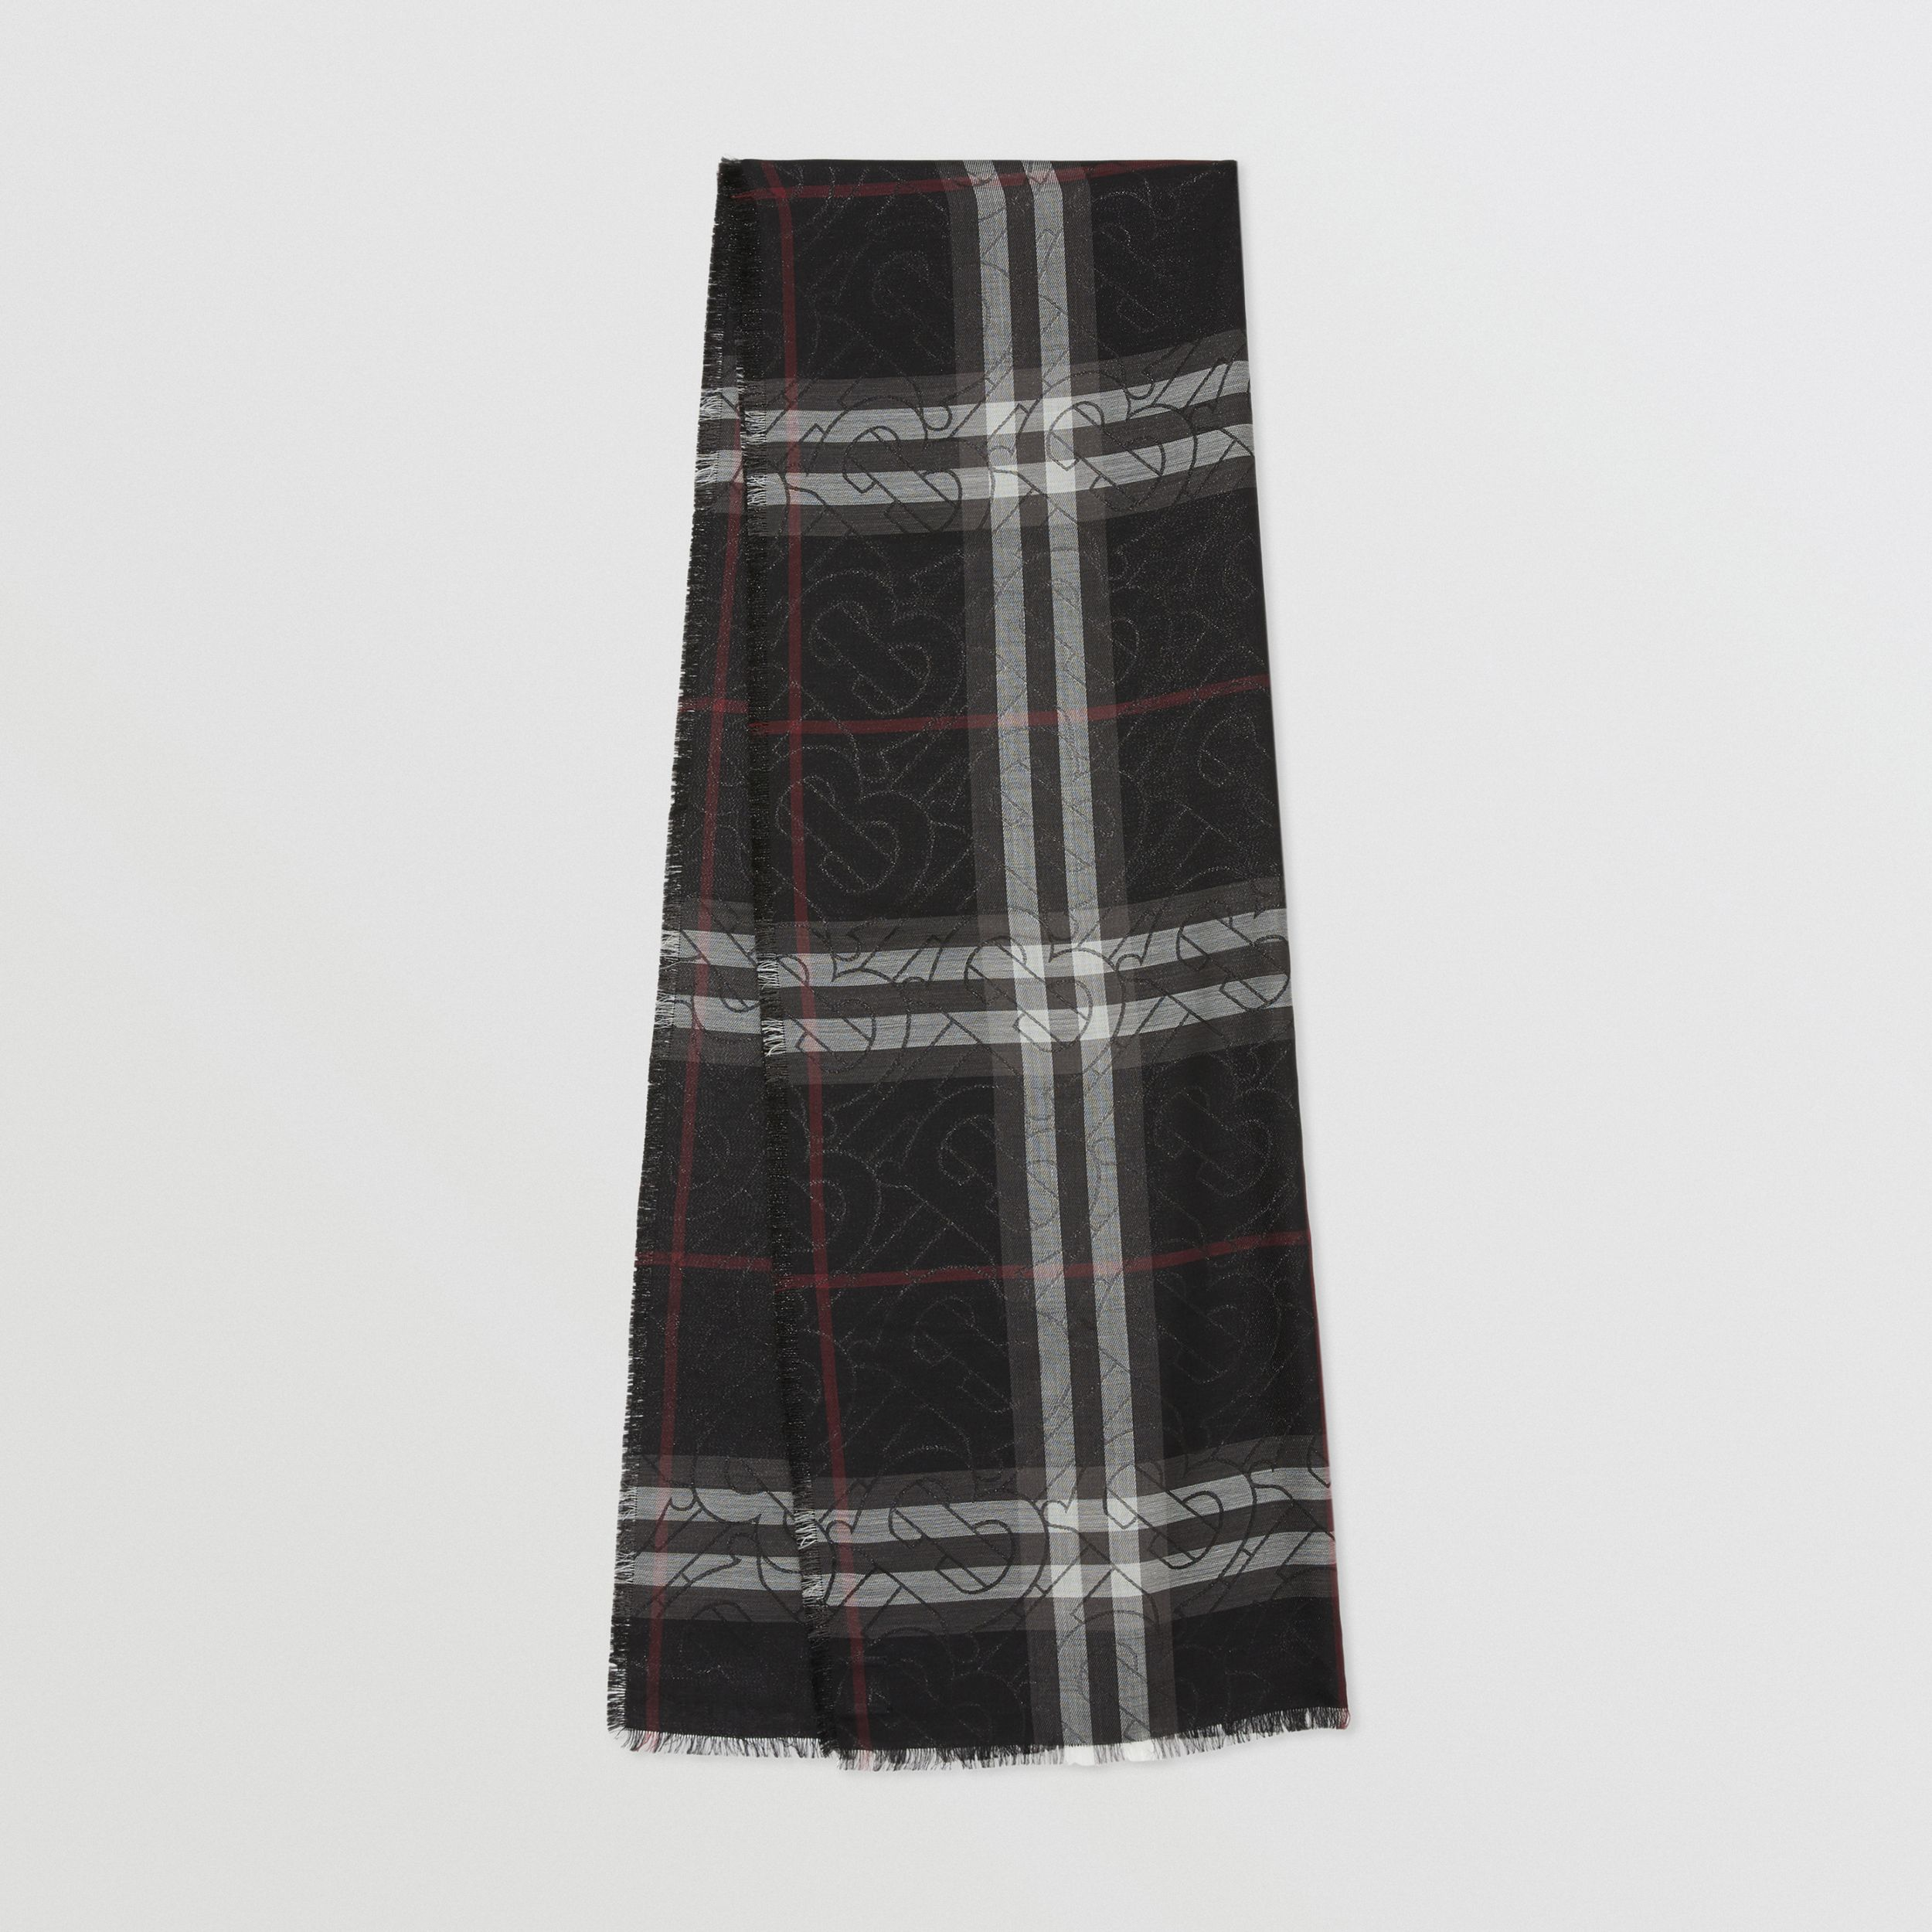 Metallic Monogram Lightweight Check Silk Blend Scarf in Black | Burberry - 1